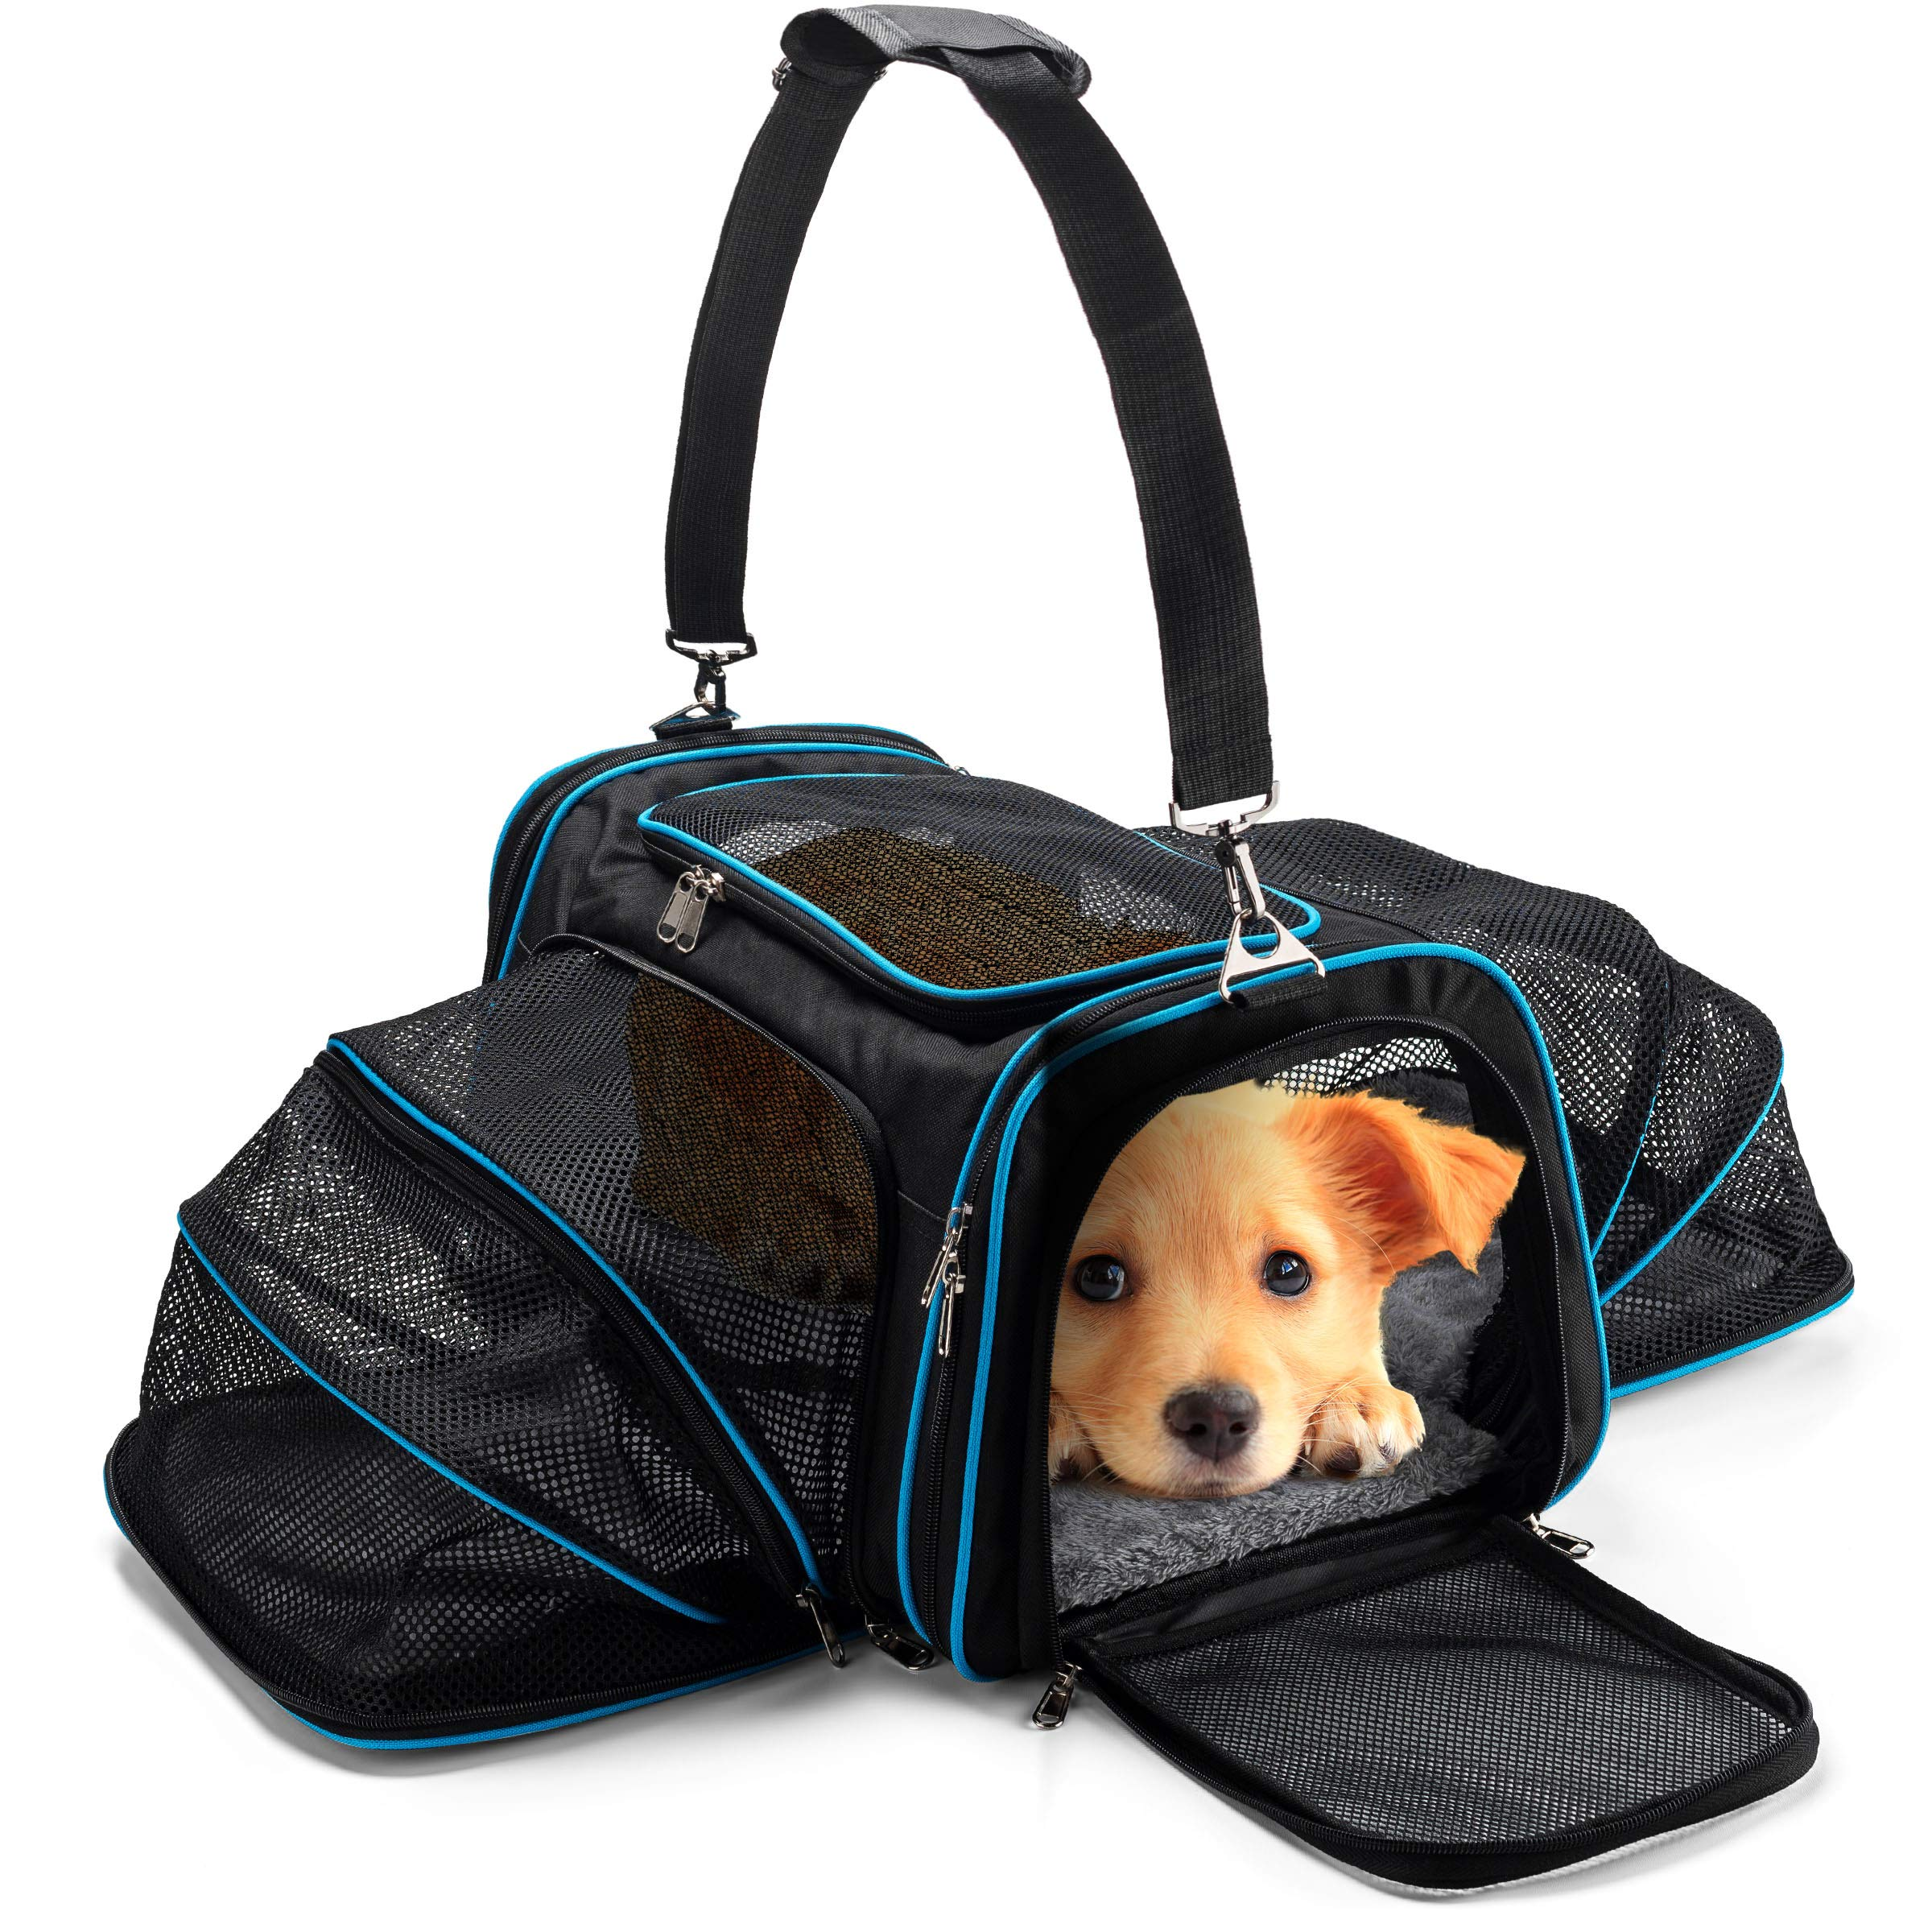 Airline Approved Pet Carrier Bag, Dual Expandable Travel Dog Carrier Bag for Small Dogs, Cats, Puppies, Kittens etc. Premium 600D Oxford Material, with Comfortable Plush Mat, Extra Strong Structure by Rau De Pet